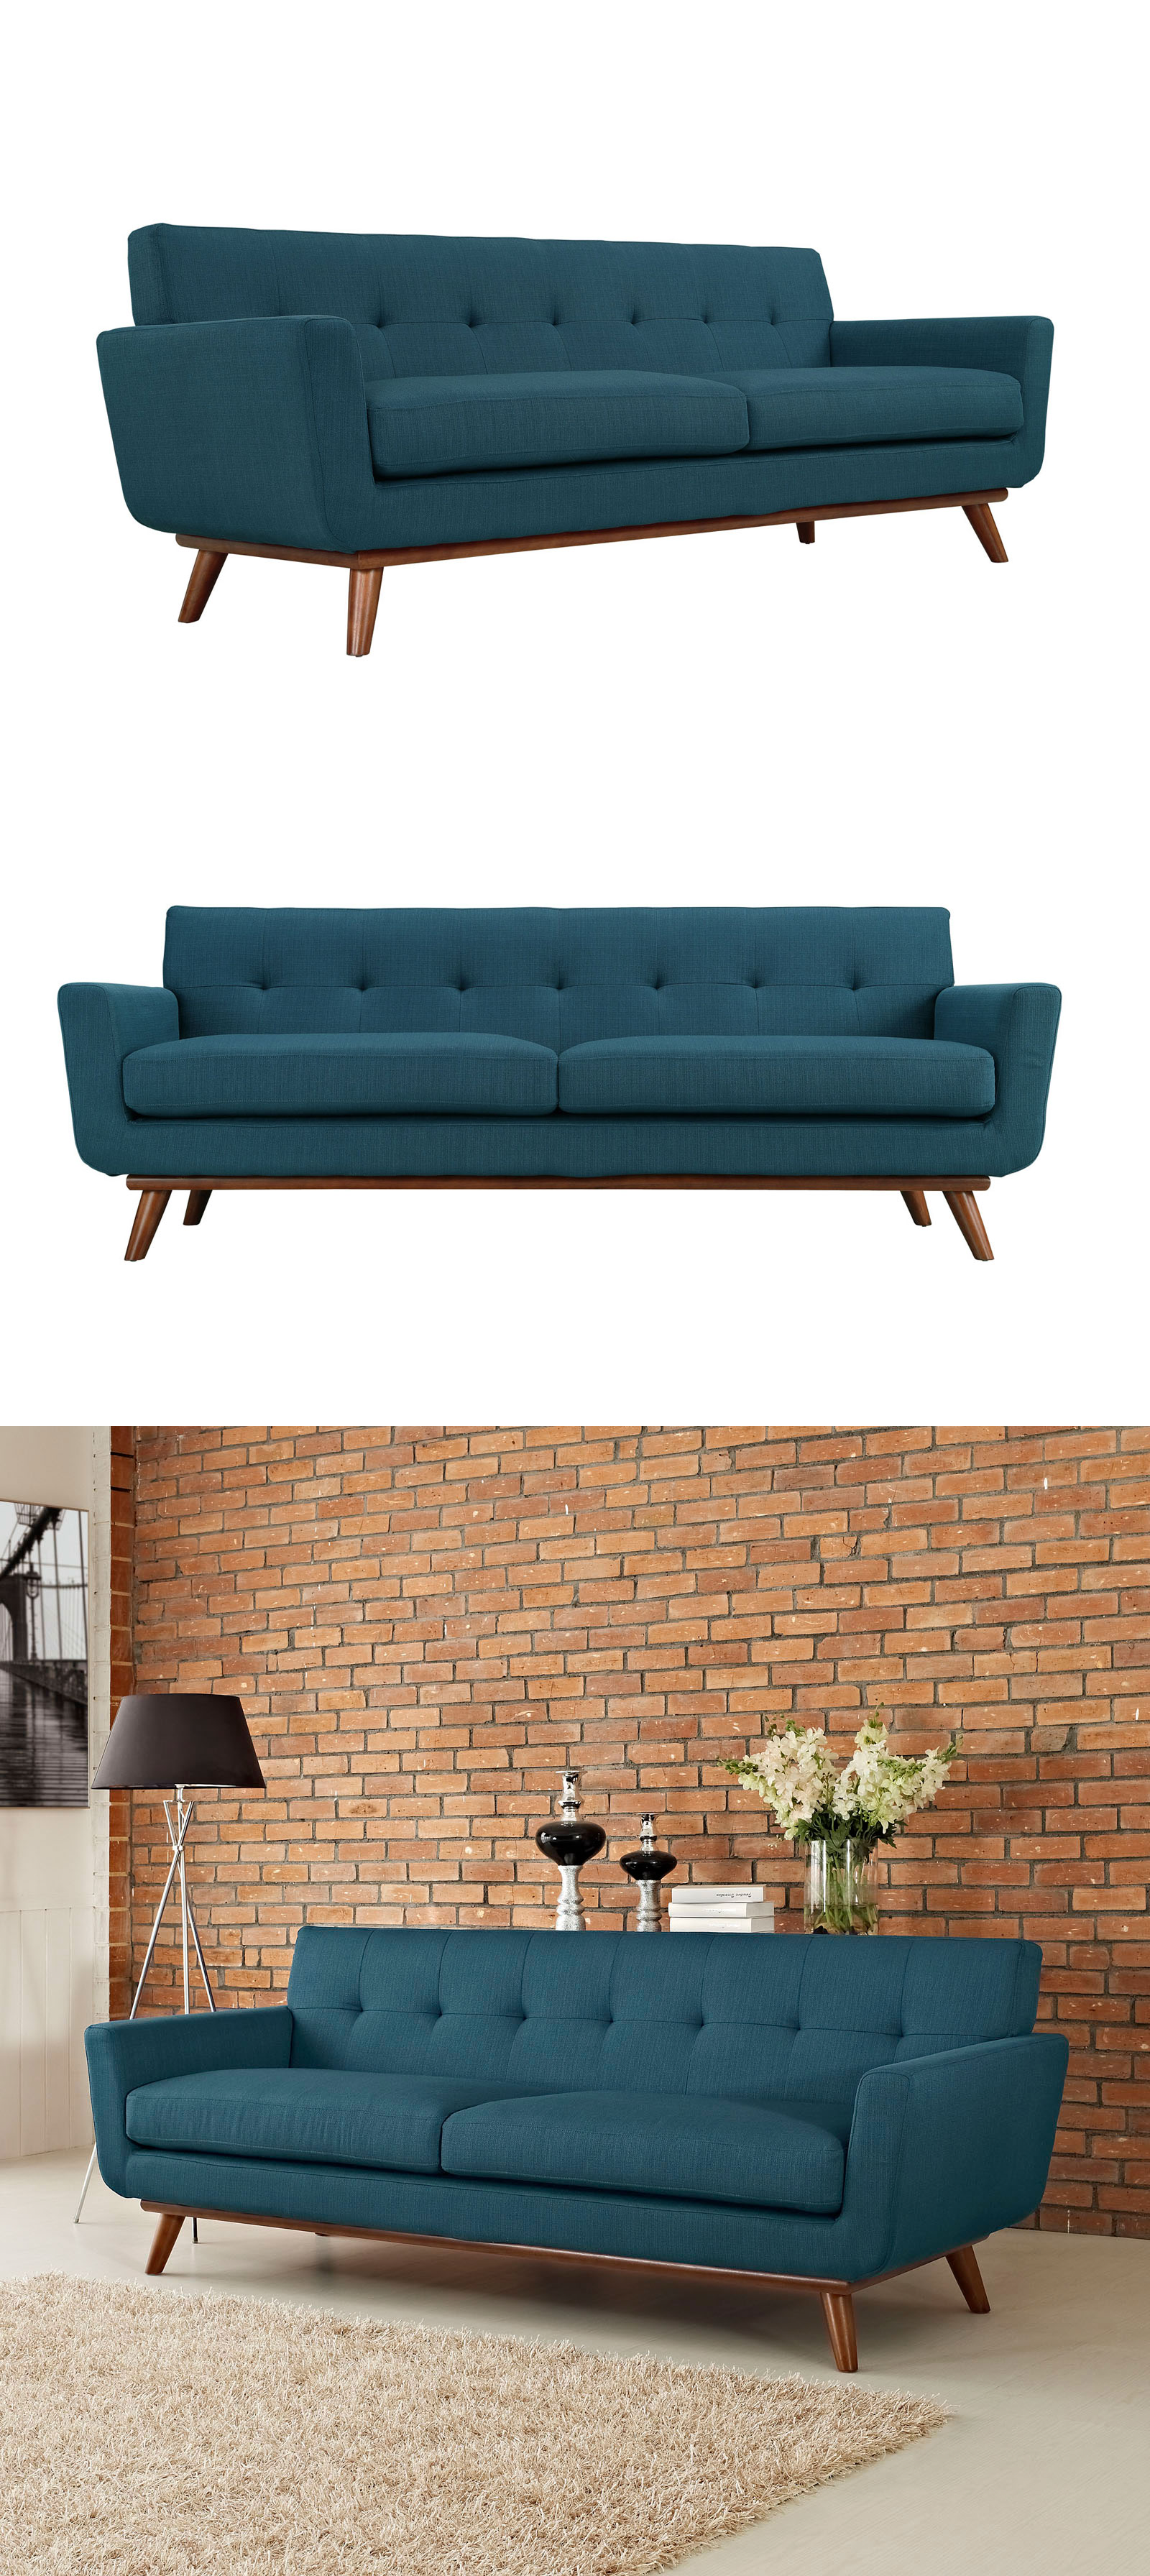 A button tufted back and removable seat cushion are supported by rubber wood legs and frame making this sofa a cozy perch for